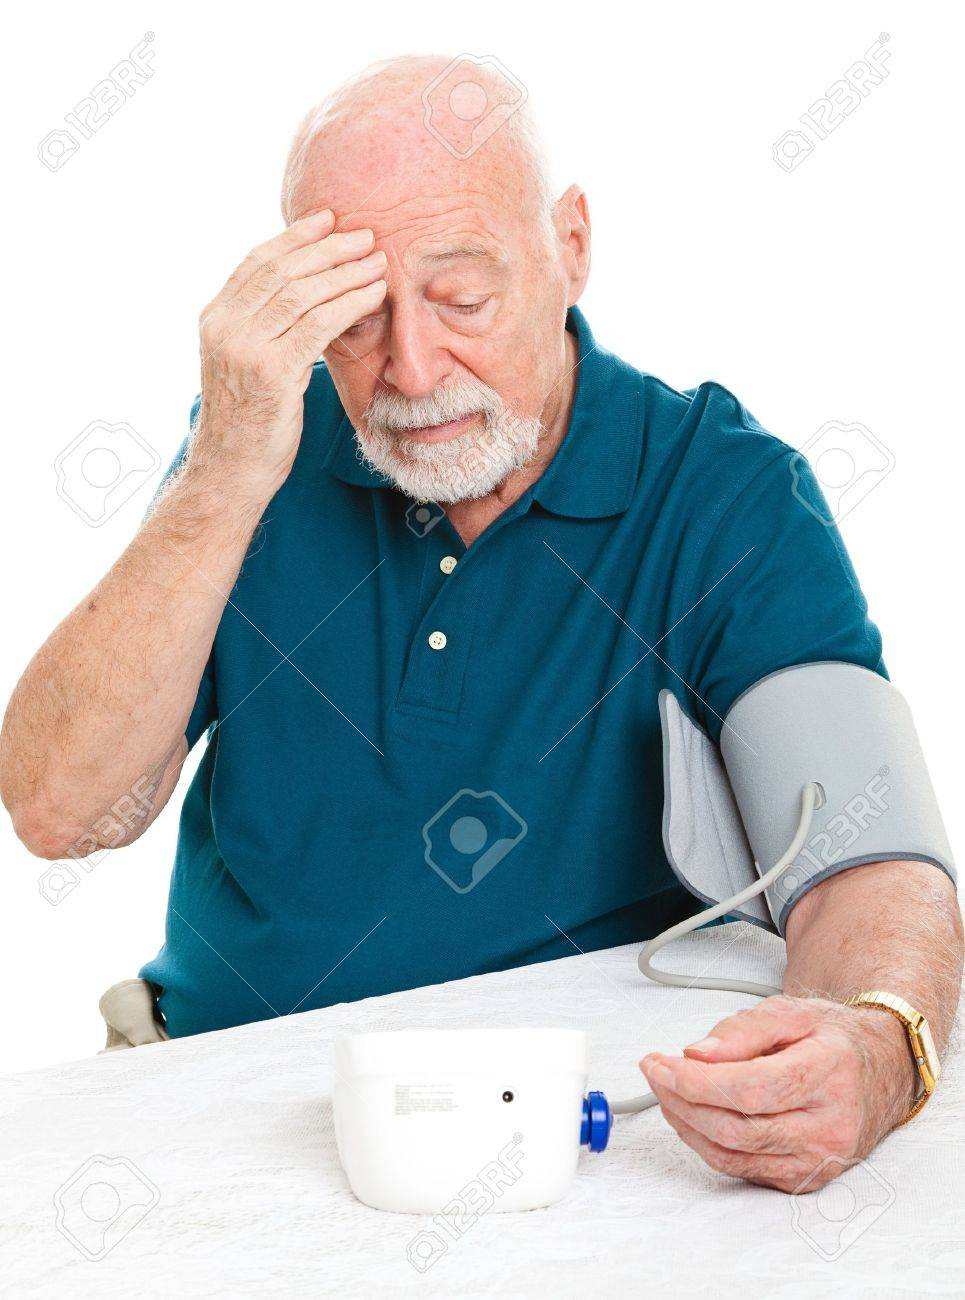 Worried senior man monitors his blood pressure at home. Stock Photo - 14943211